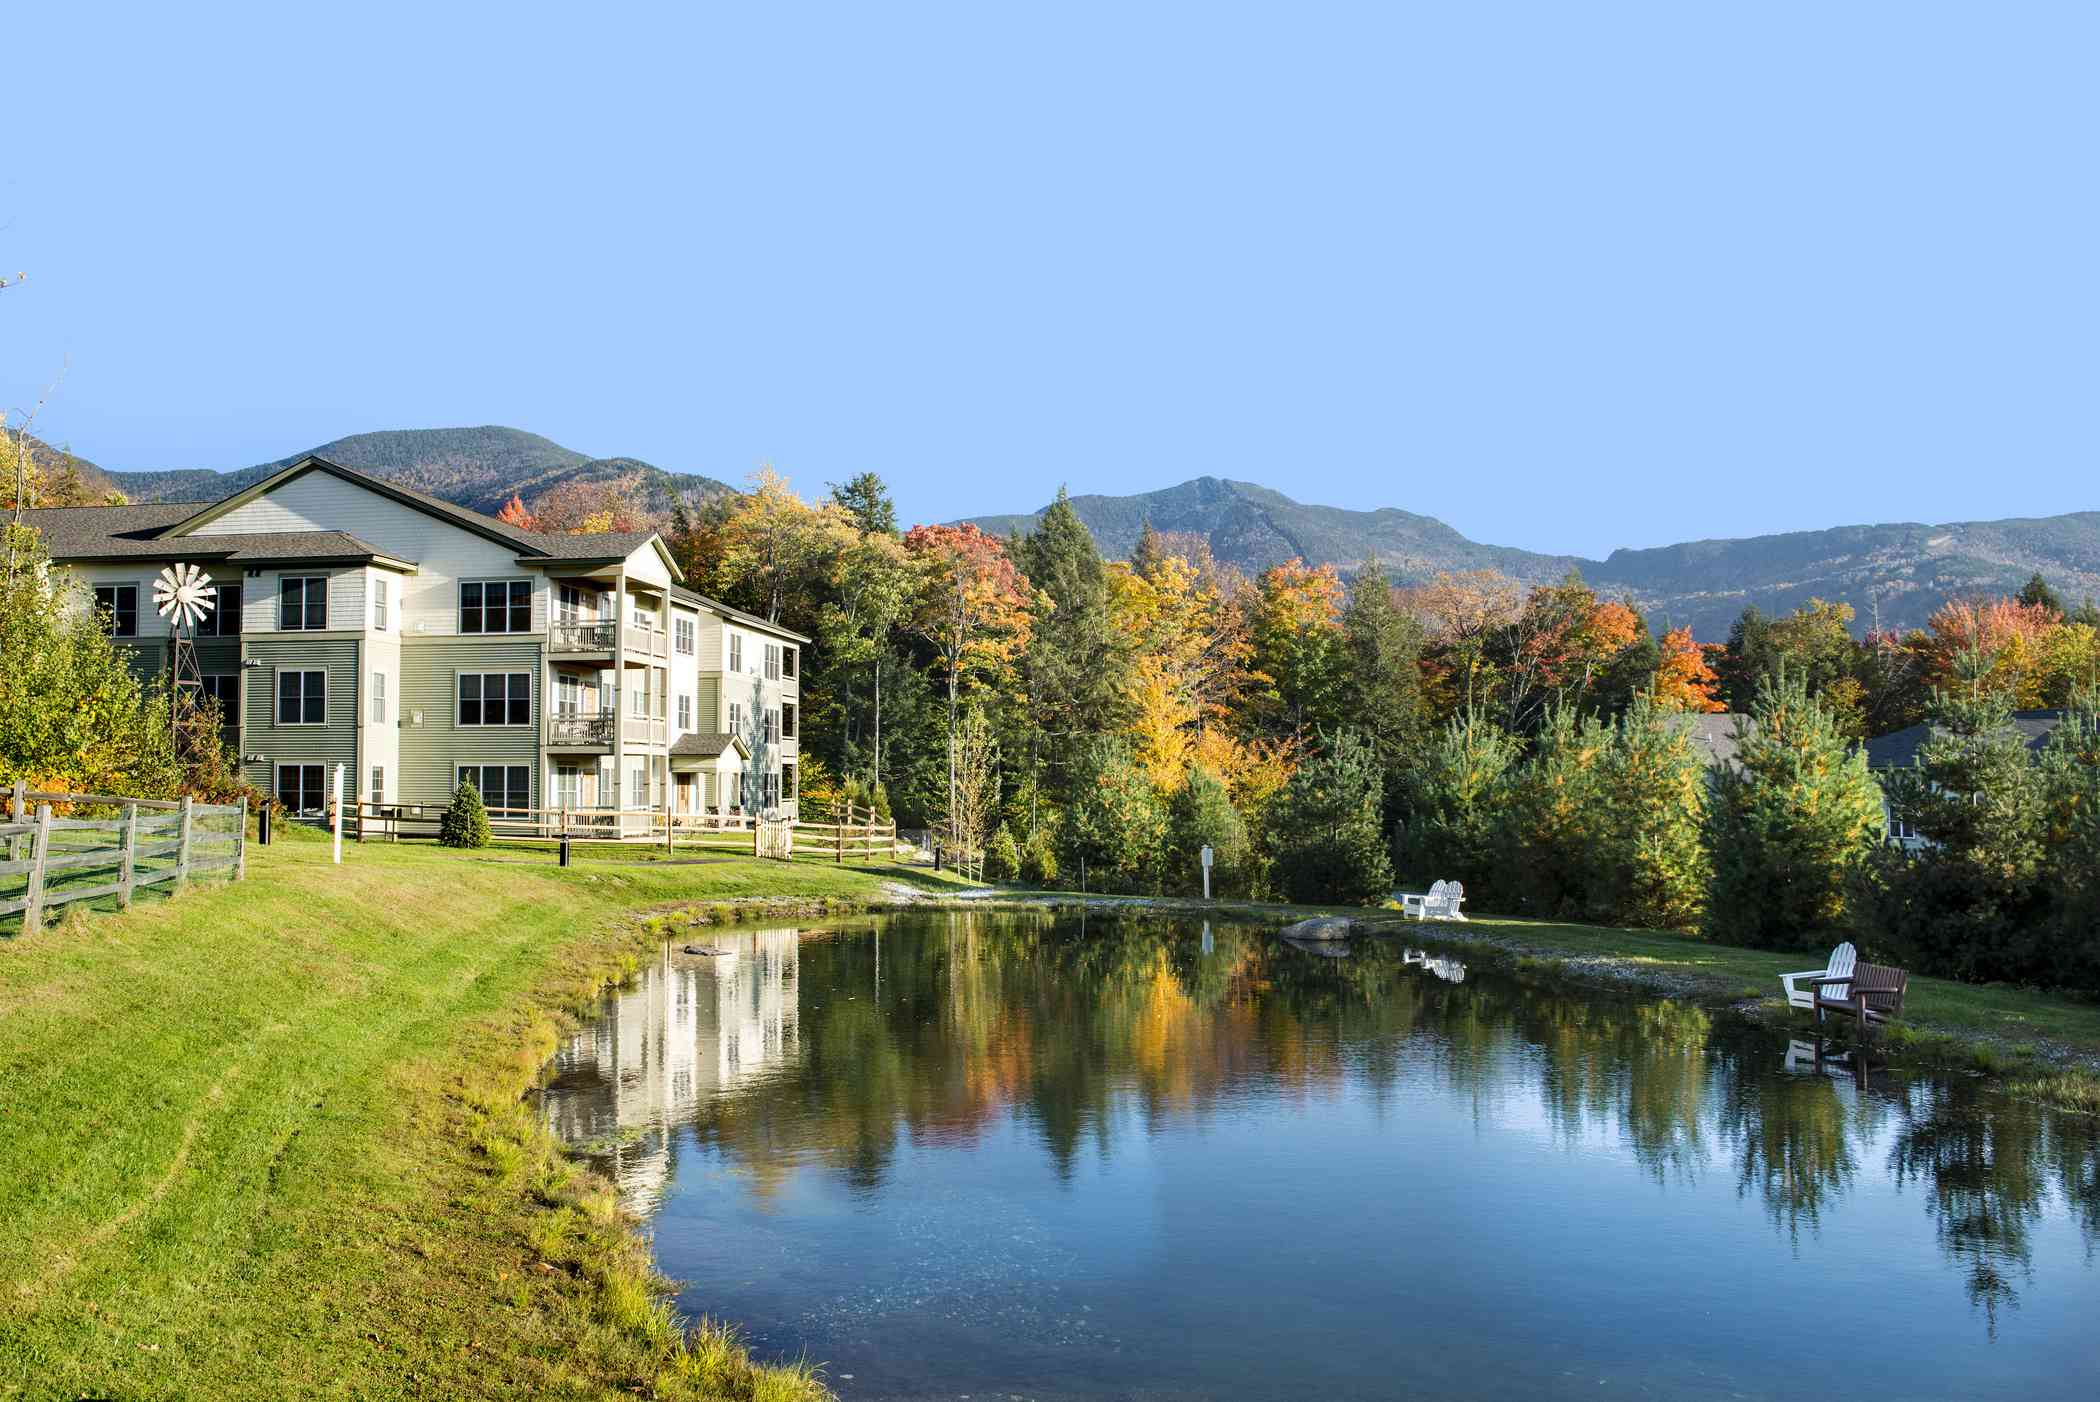 Win an autumn vacation at Smugglers' Notch: a family-friendly resort in Vermont